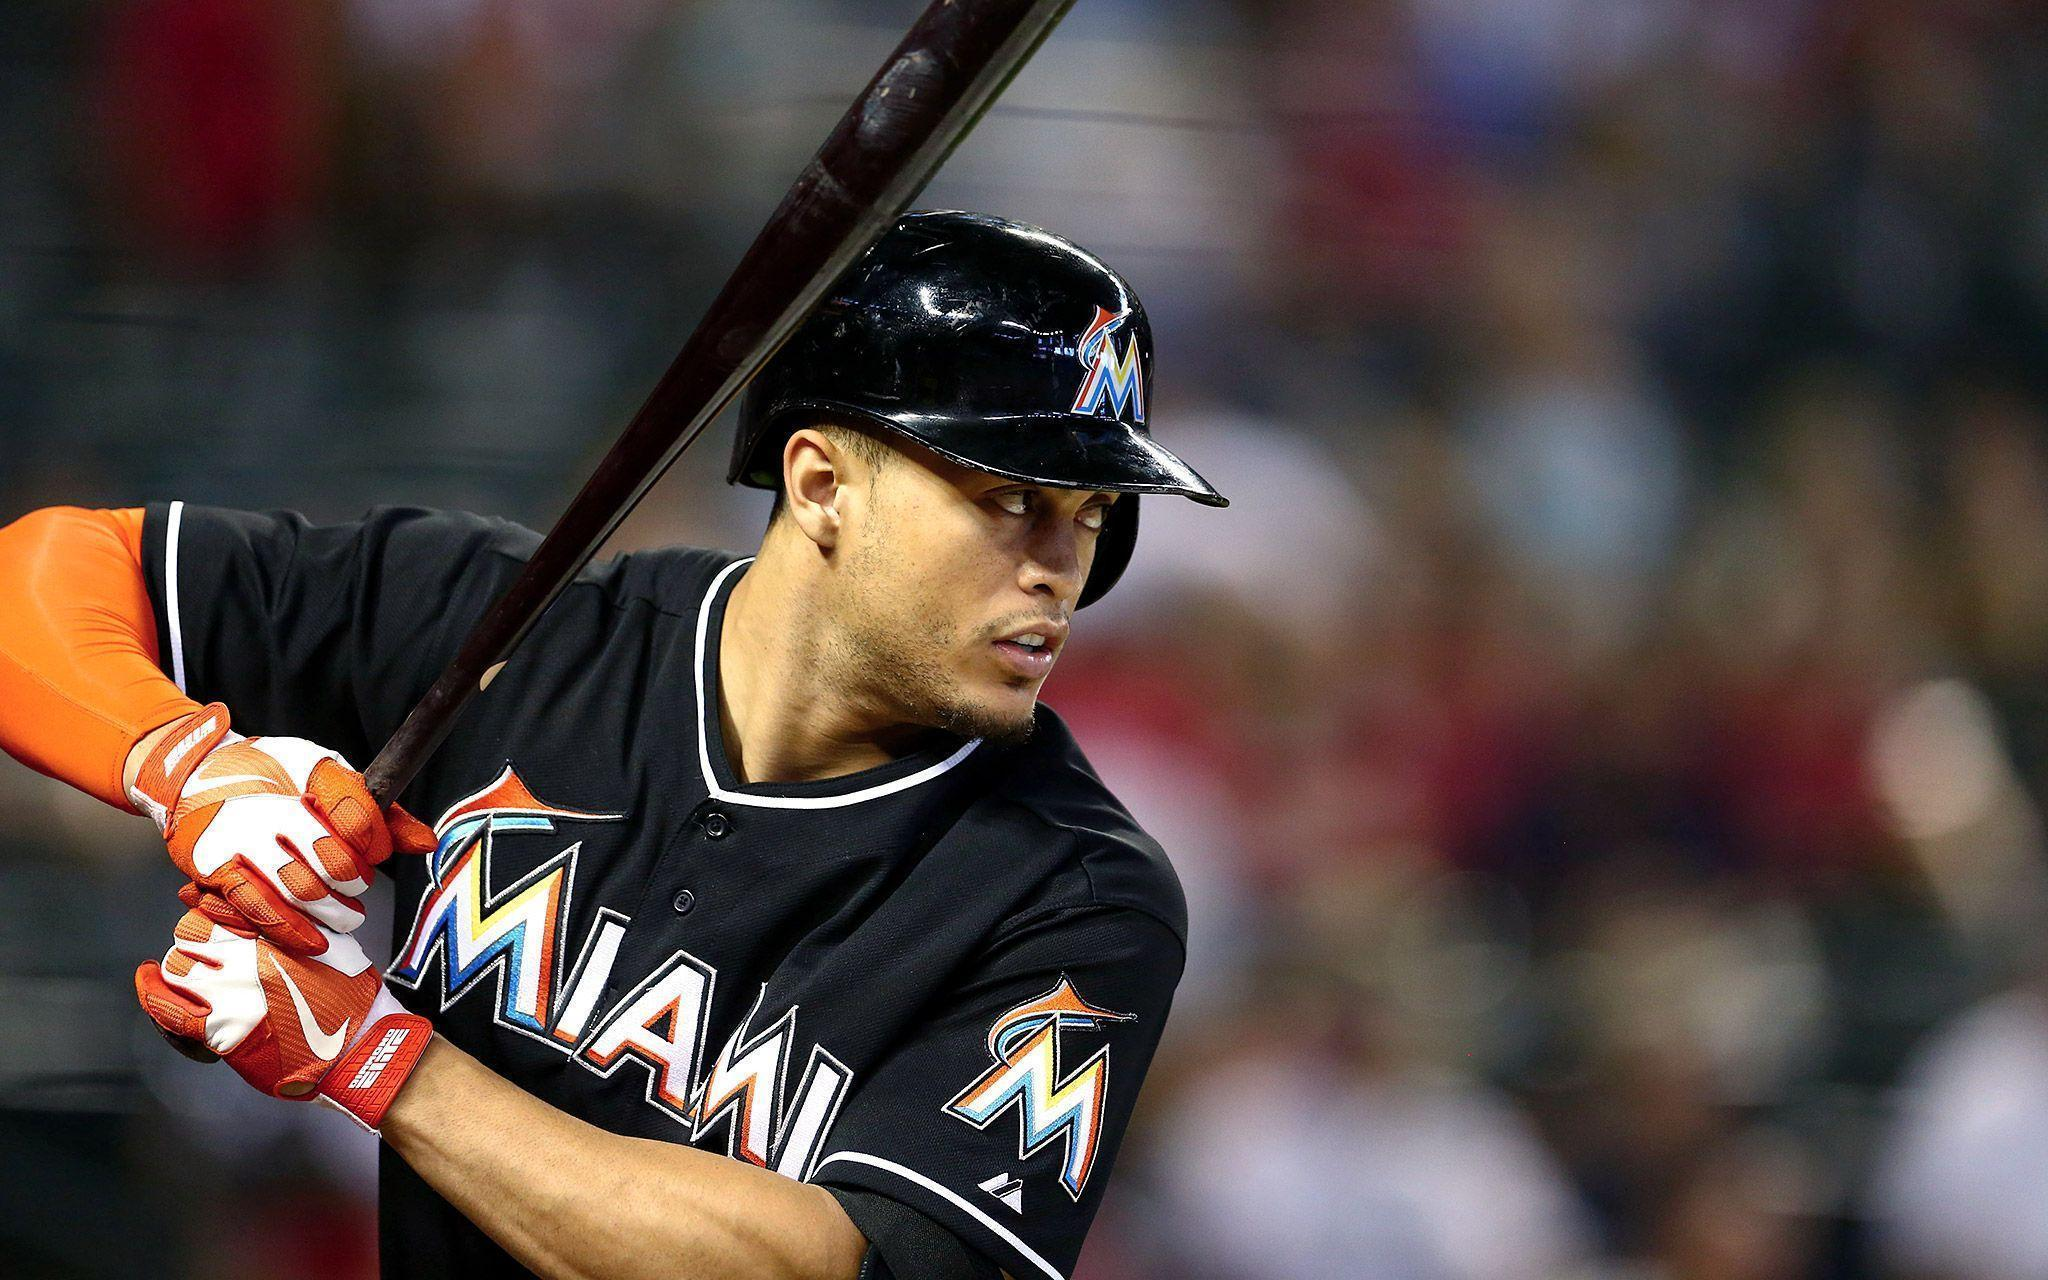 8. Giancarlo Stanton, OF, Marlins - Next Face of Baseball - ESPN